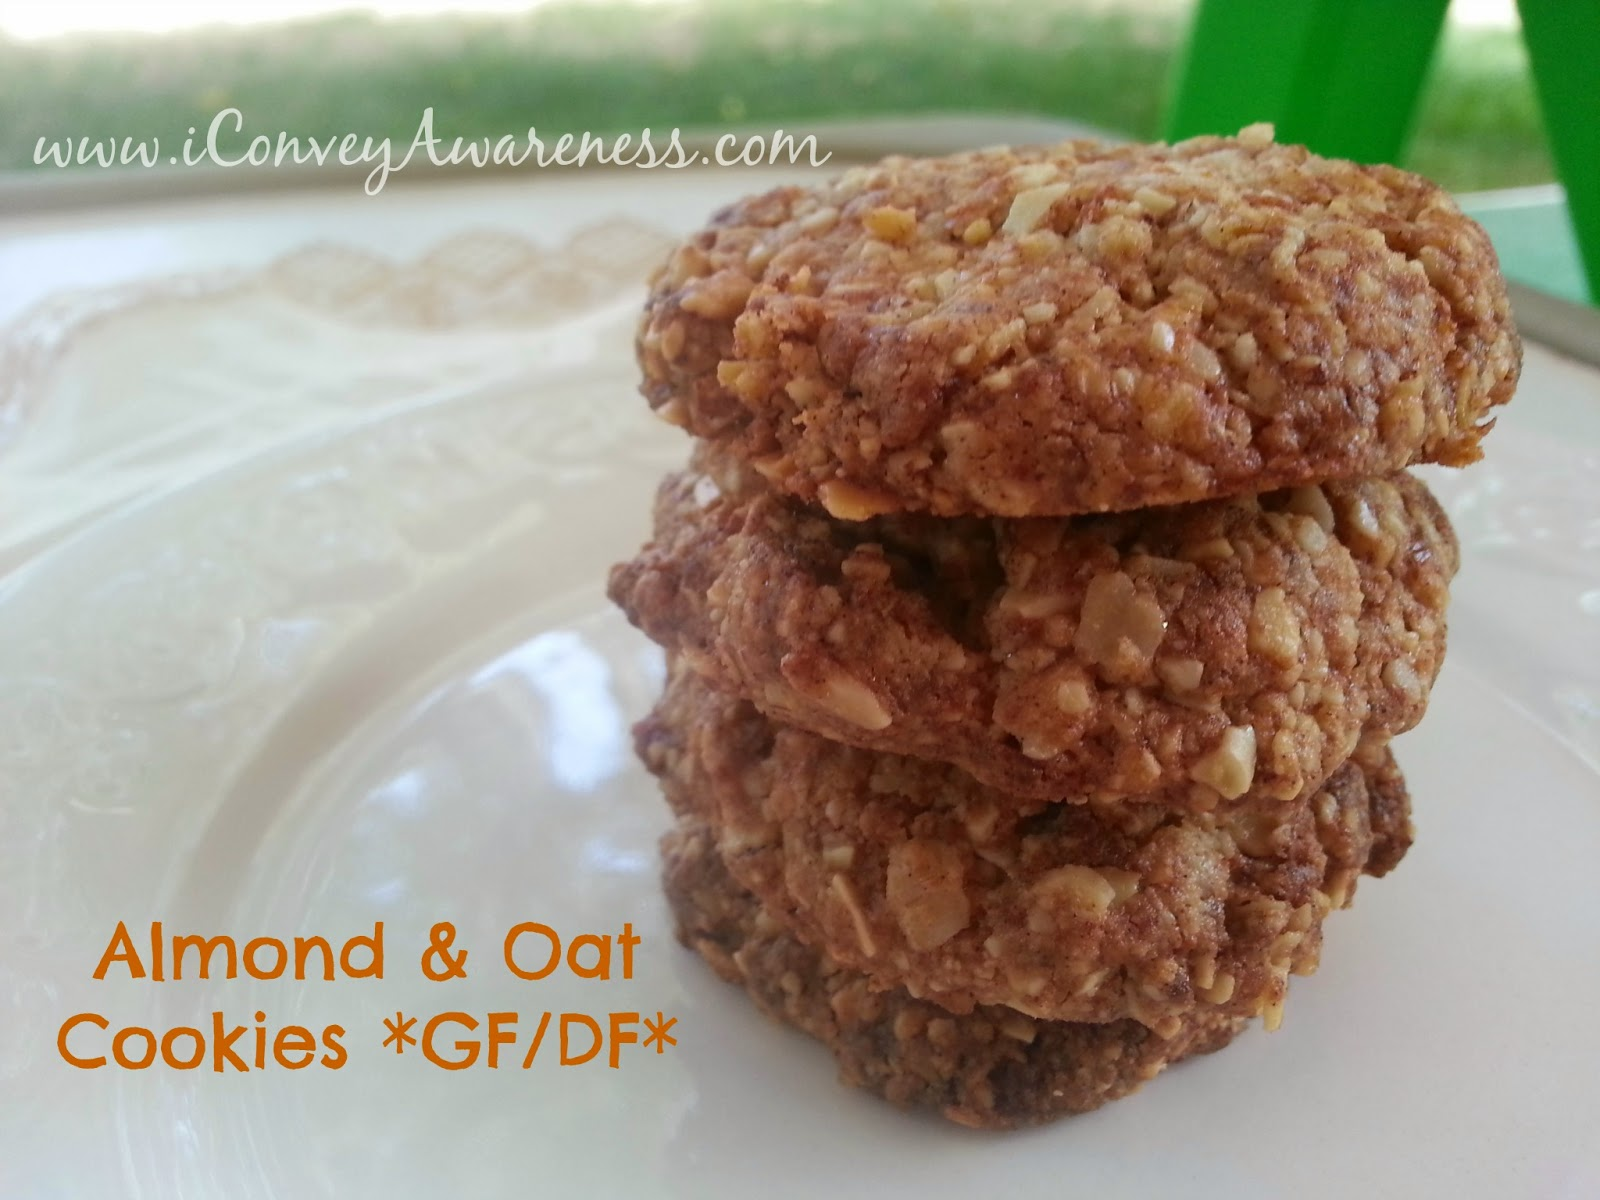 Convey Awareness | Gluten and dairy free almond & oat cookies